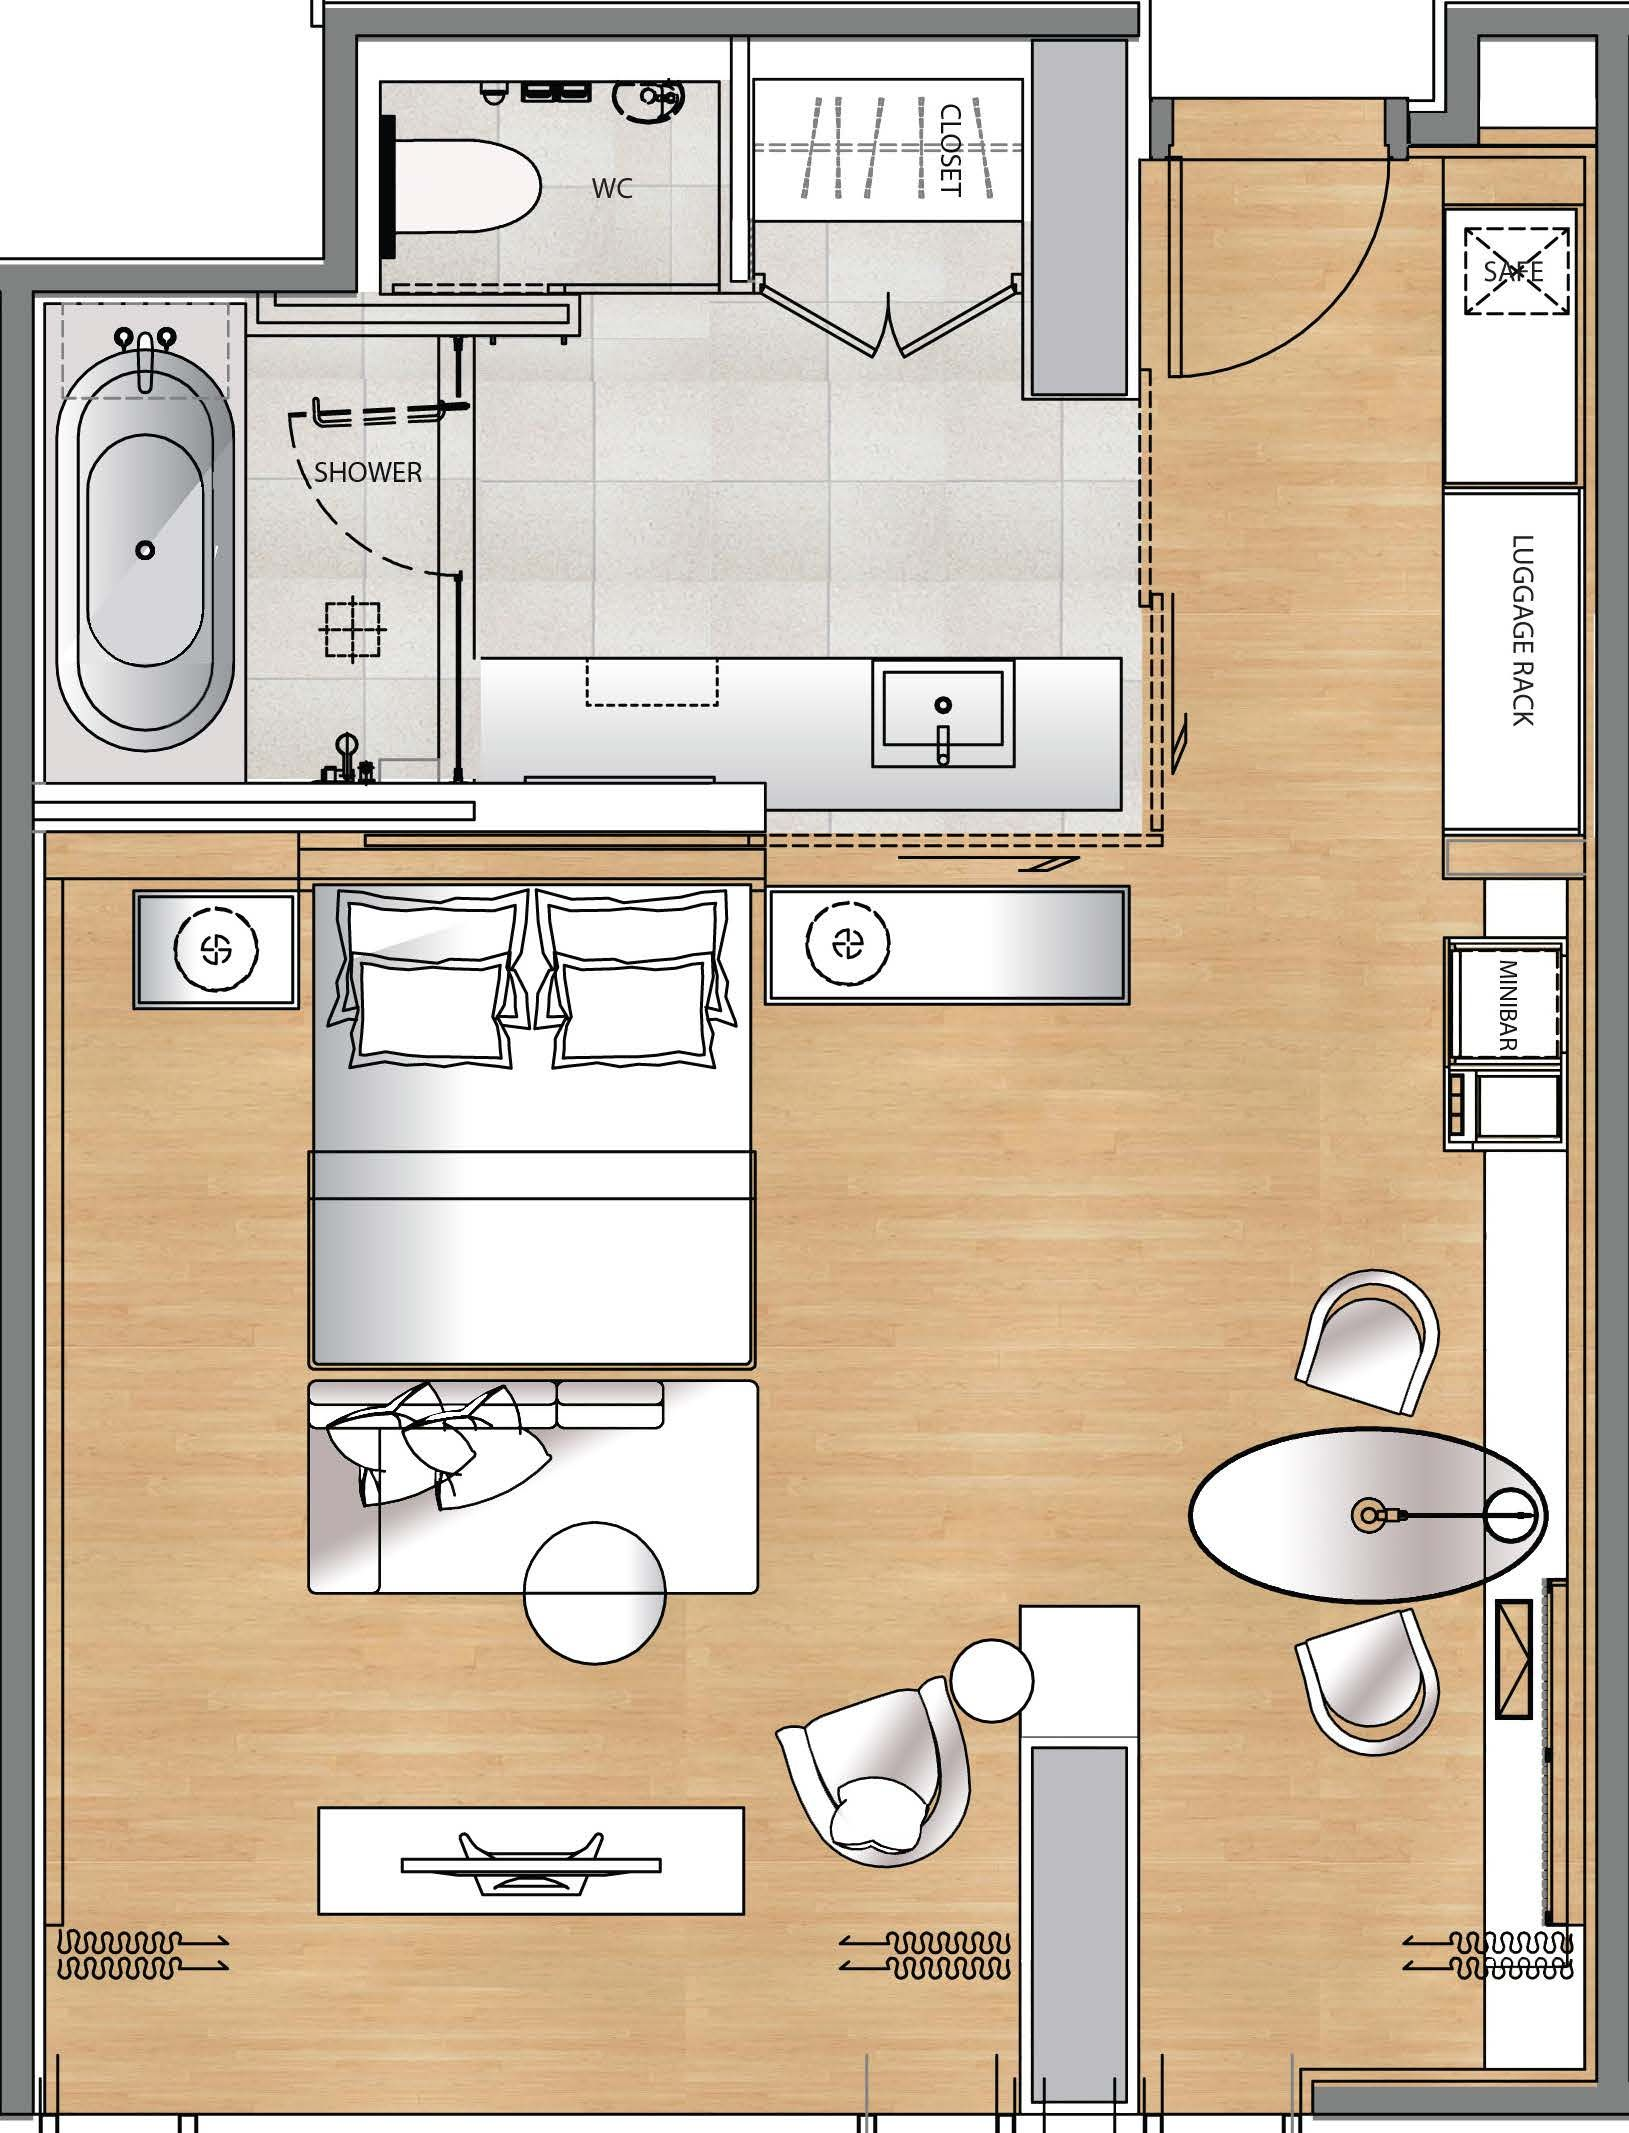 Hotel gym floor plan google search hotel rooms for Room remodel program